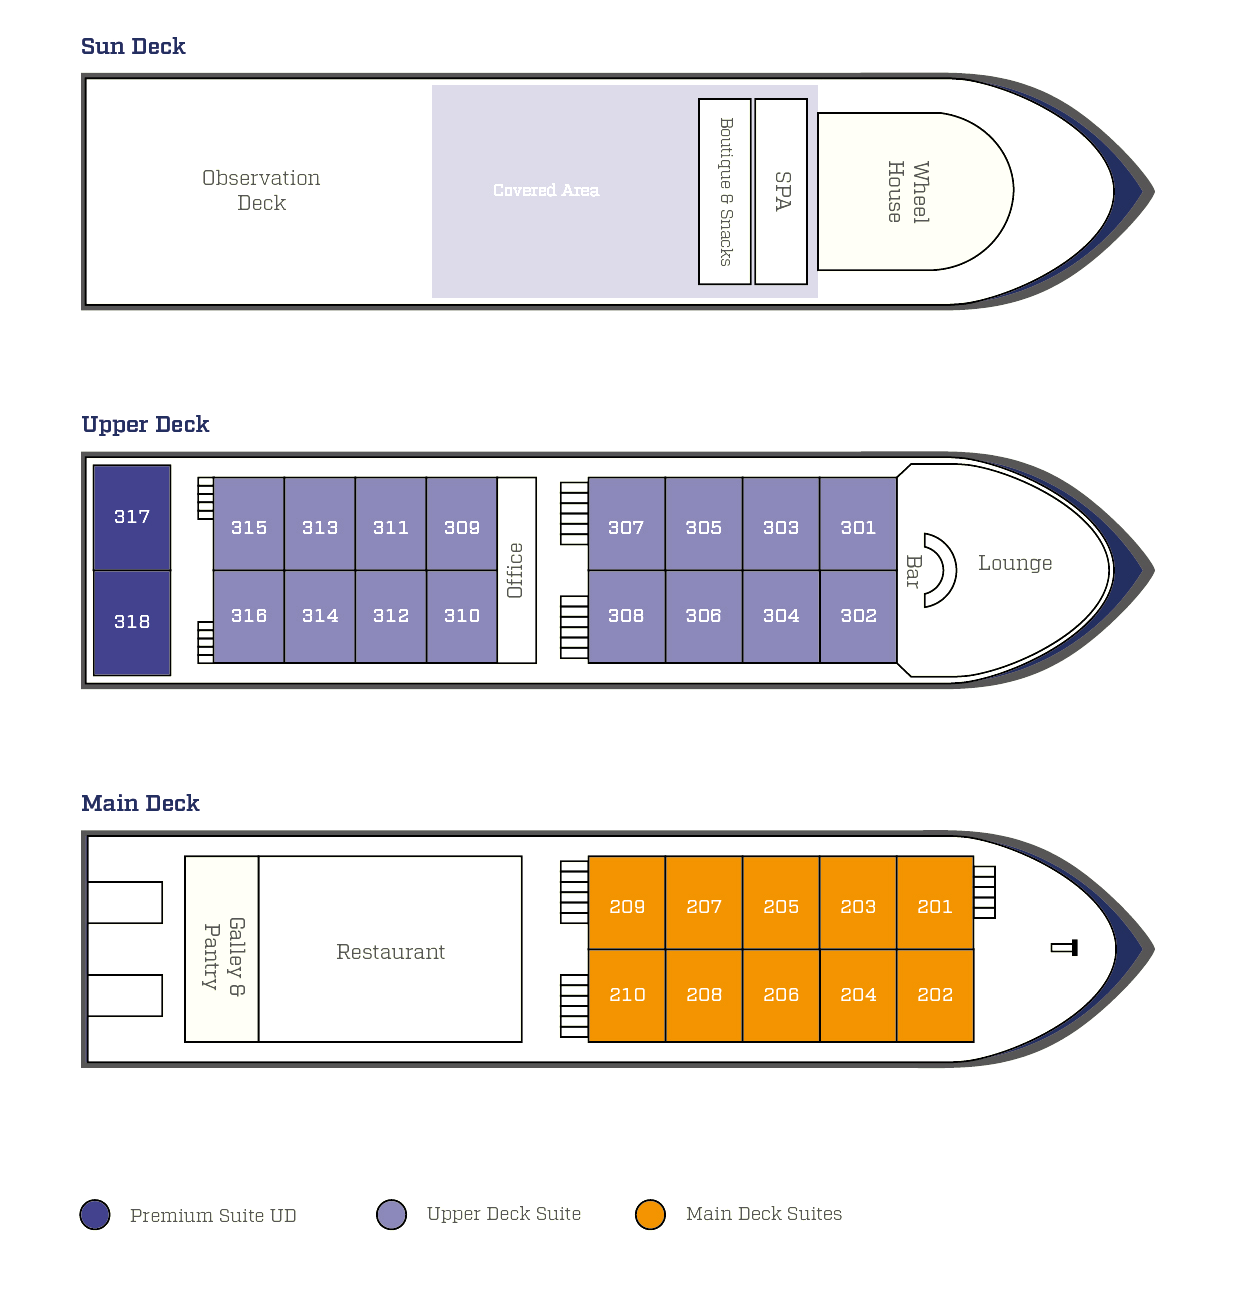 Cabin layout for Bengal Ganga